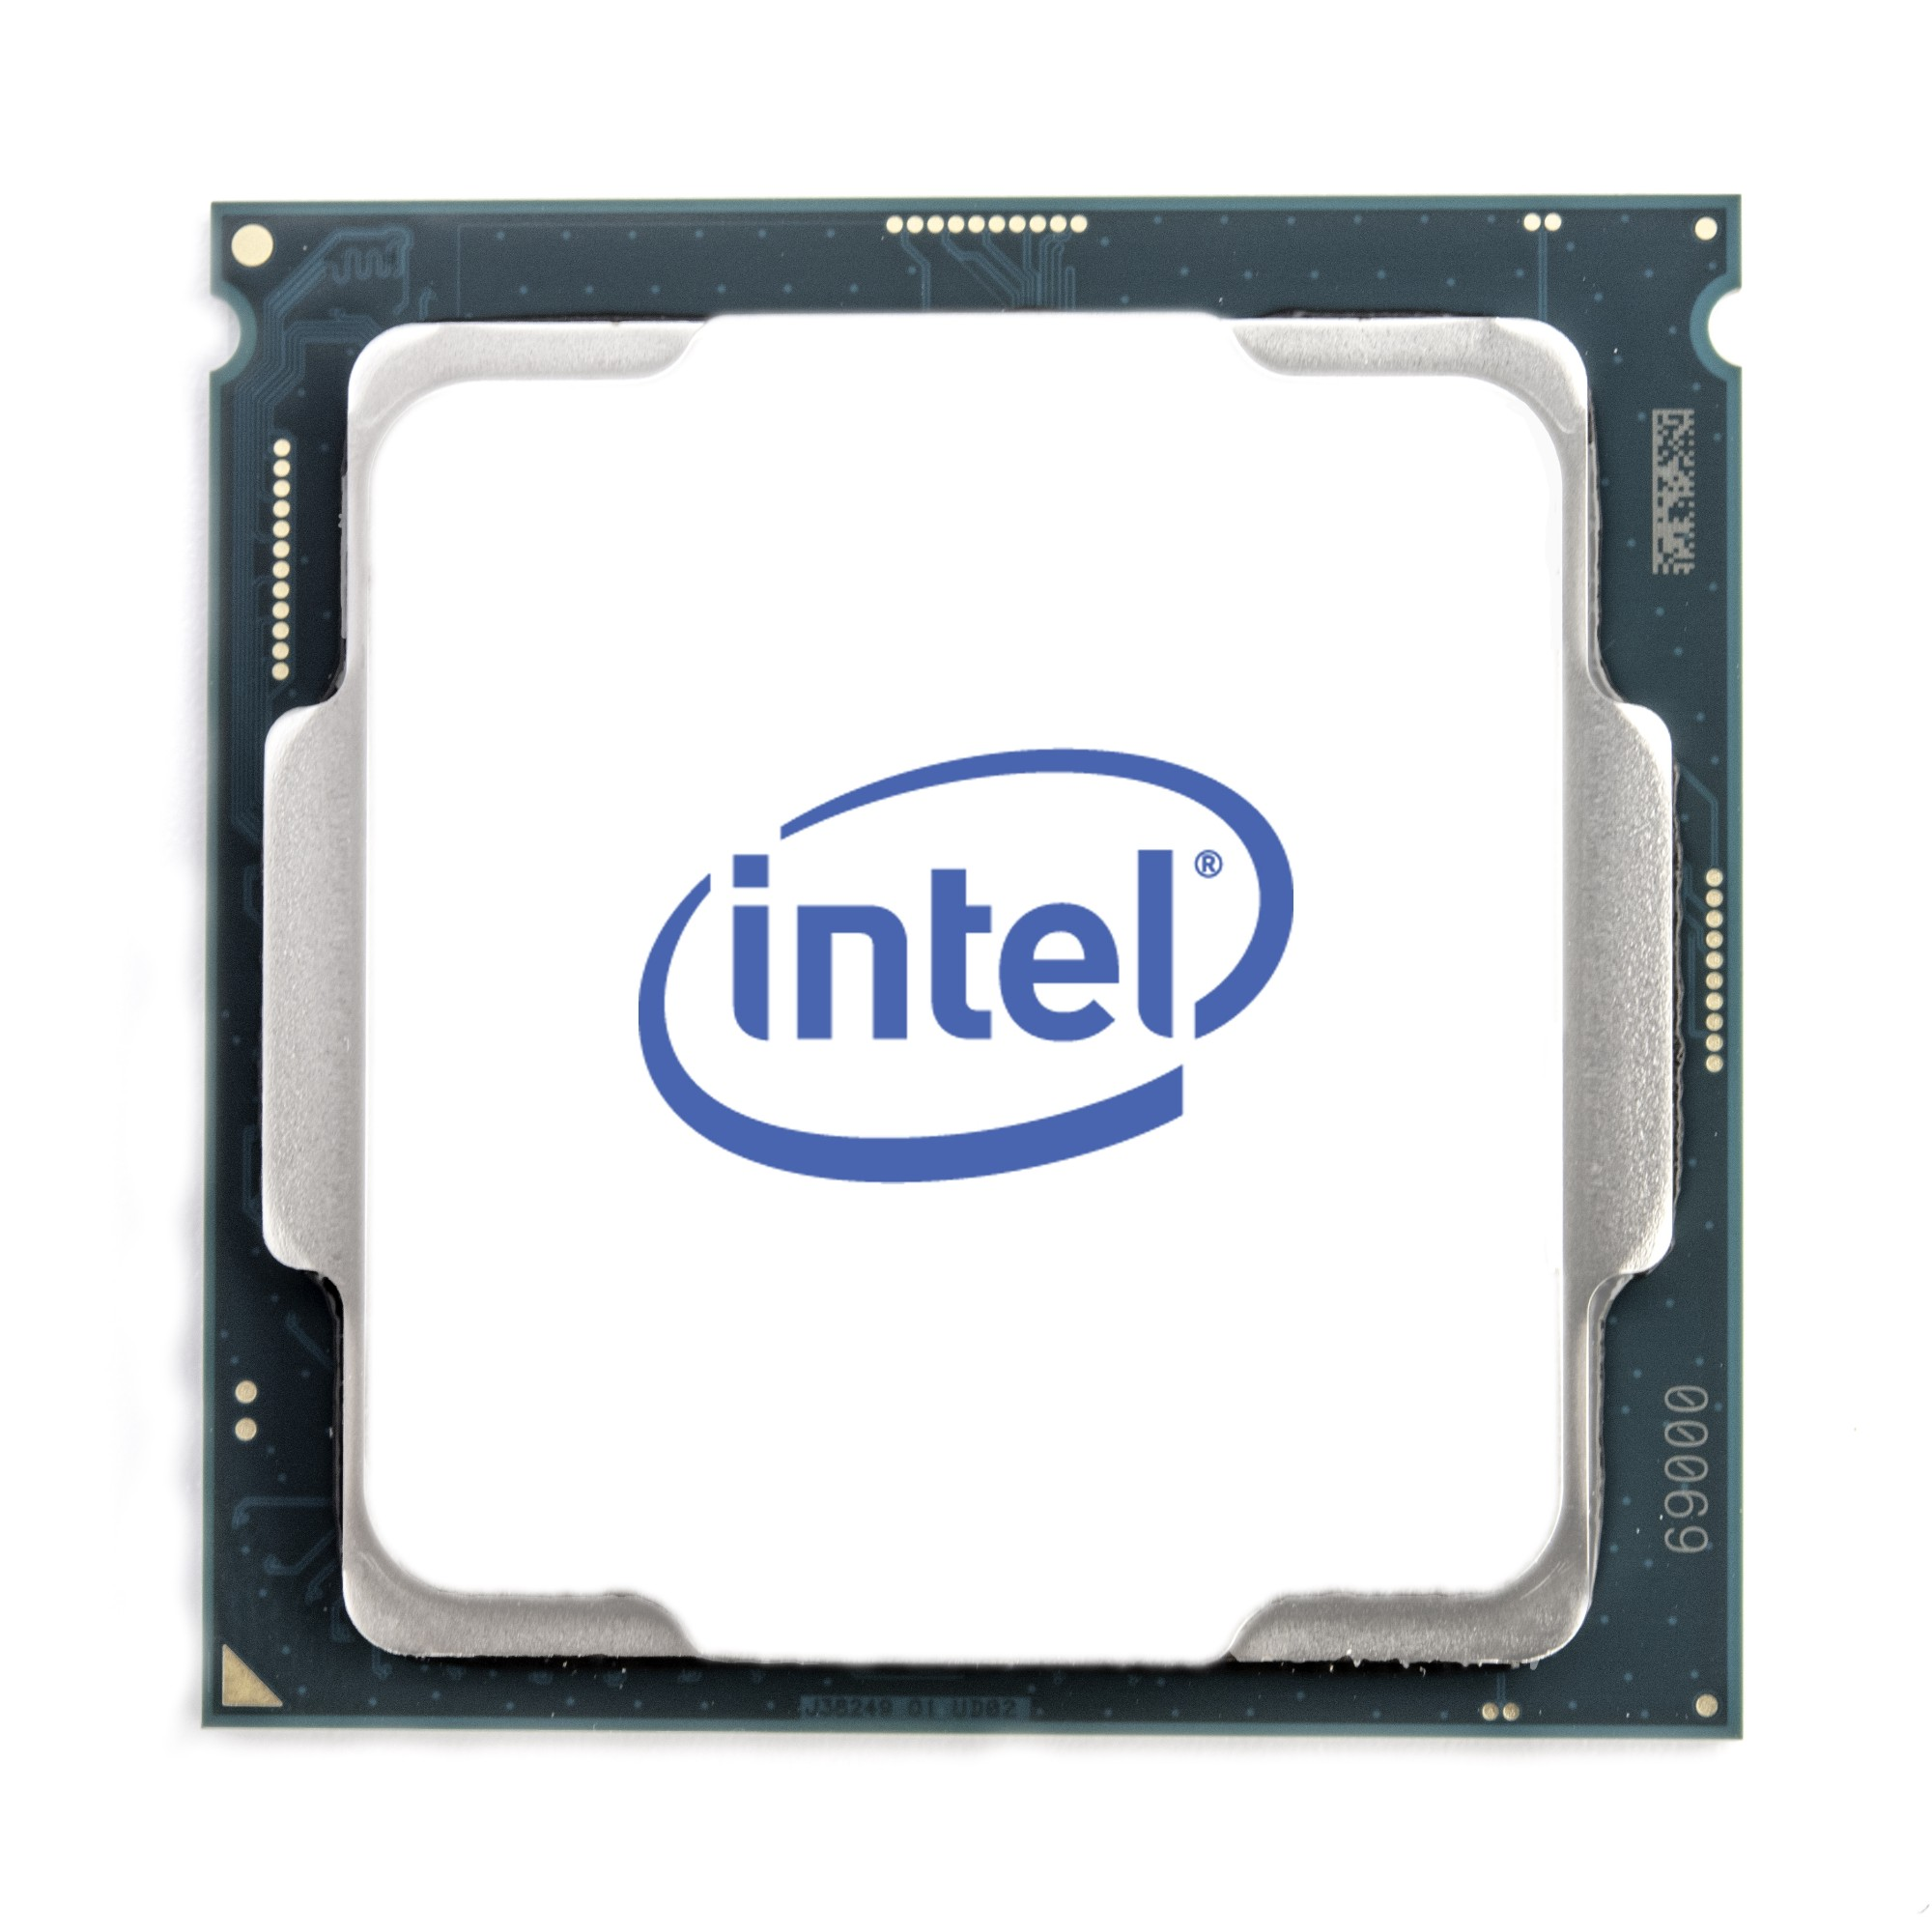 Intel Core i7-9700T processor 2 GHz 12 MB Smart Cache